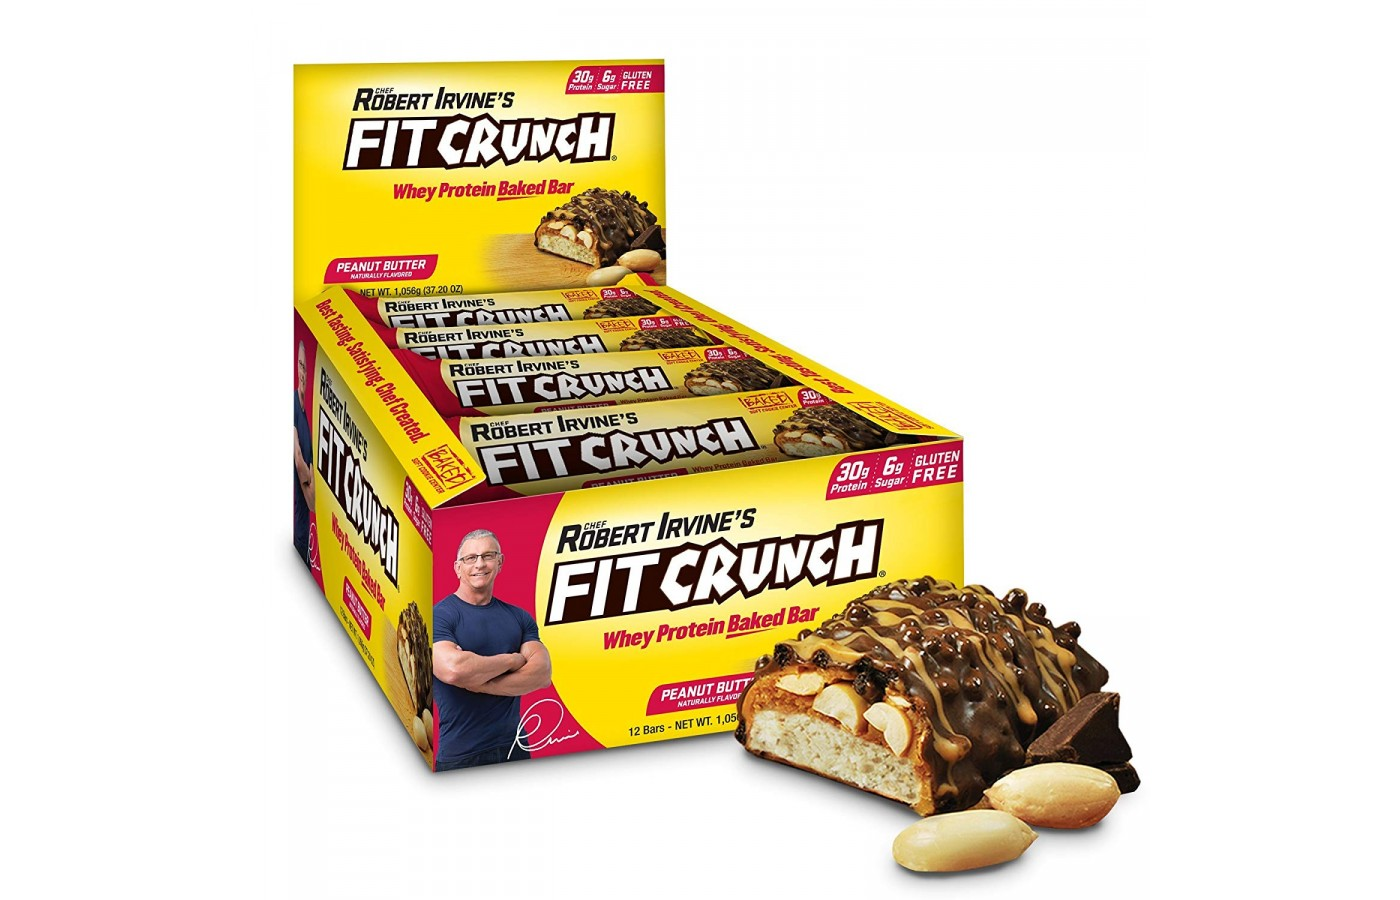 FitCrunchBoxed